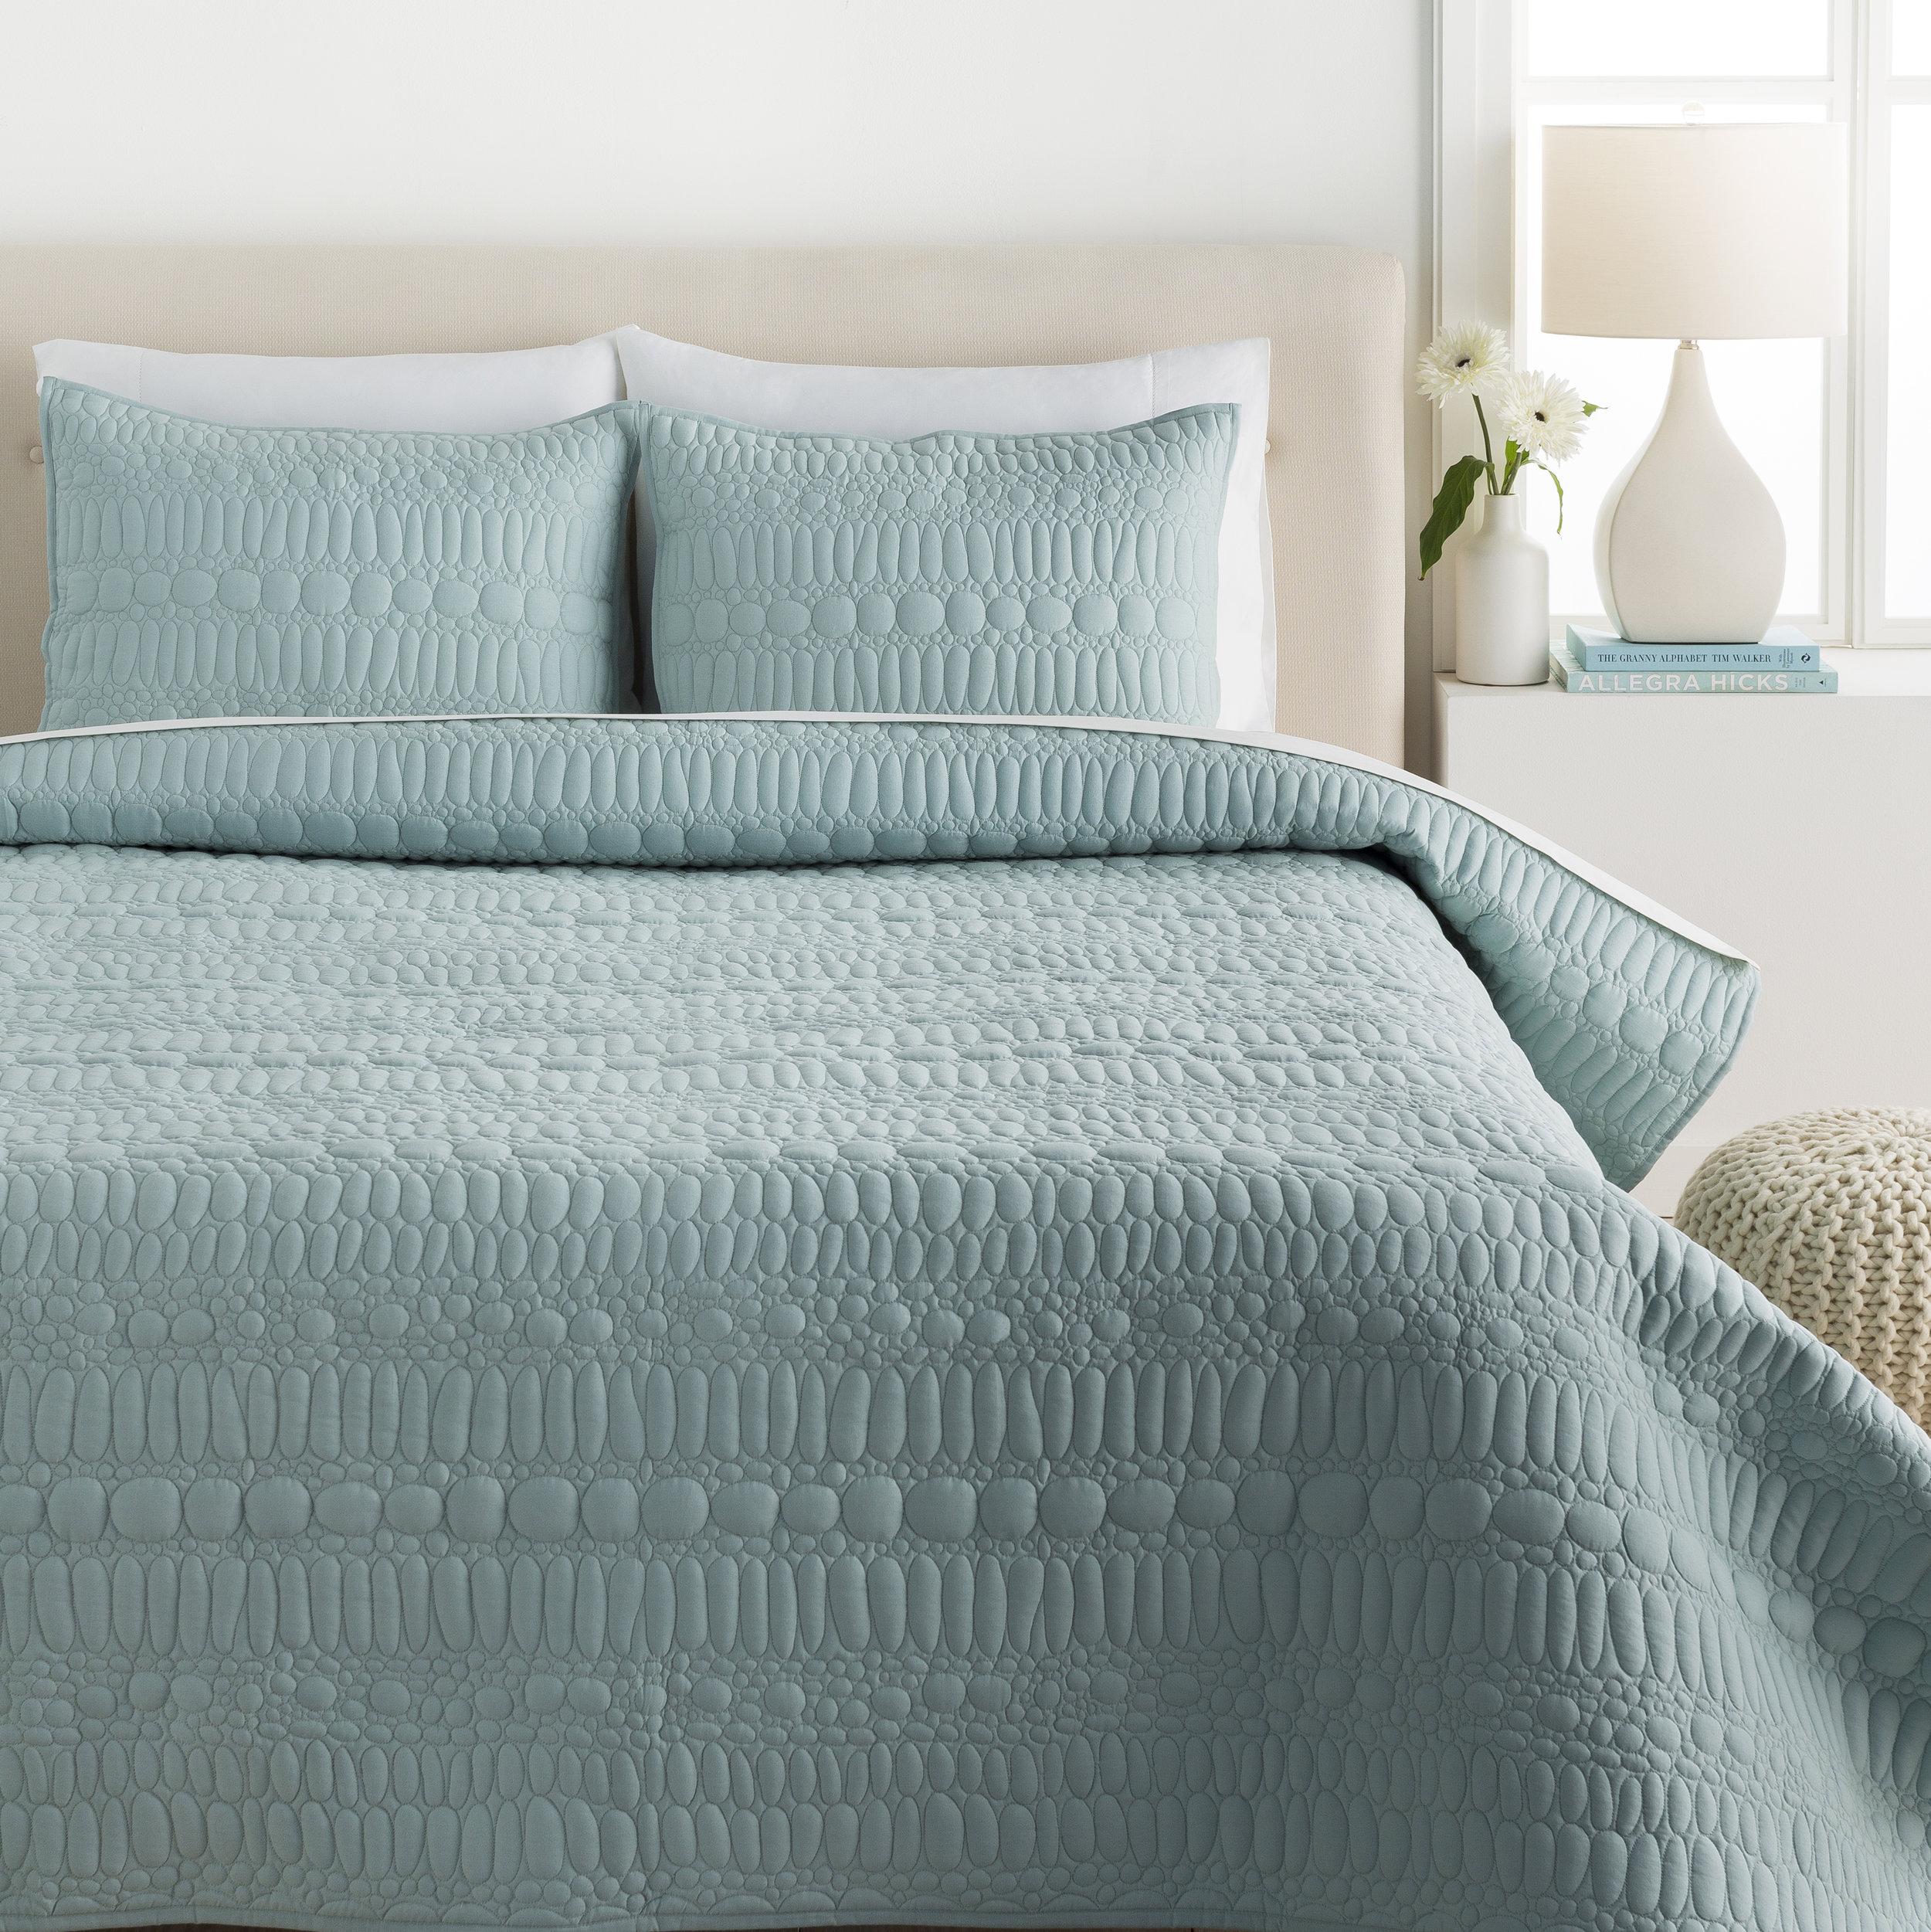 Shell Rummel Aqua Pebble Quilt set from Surya